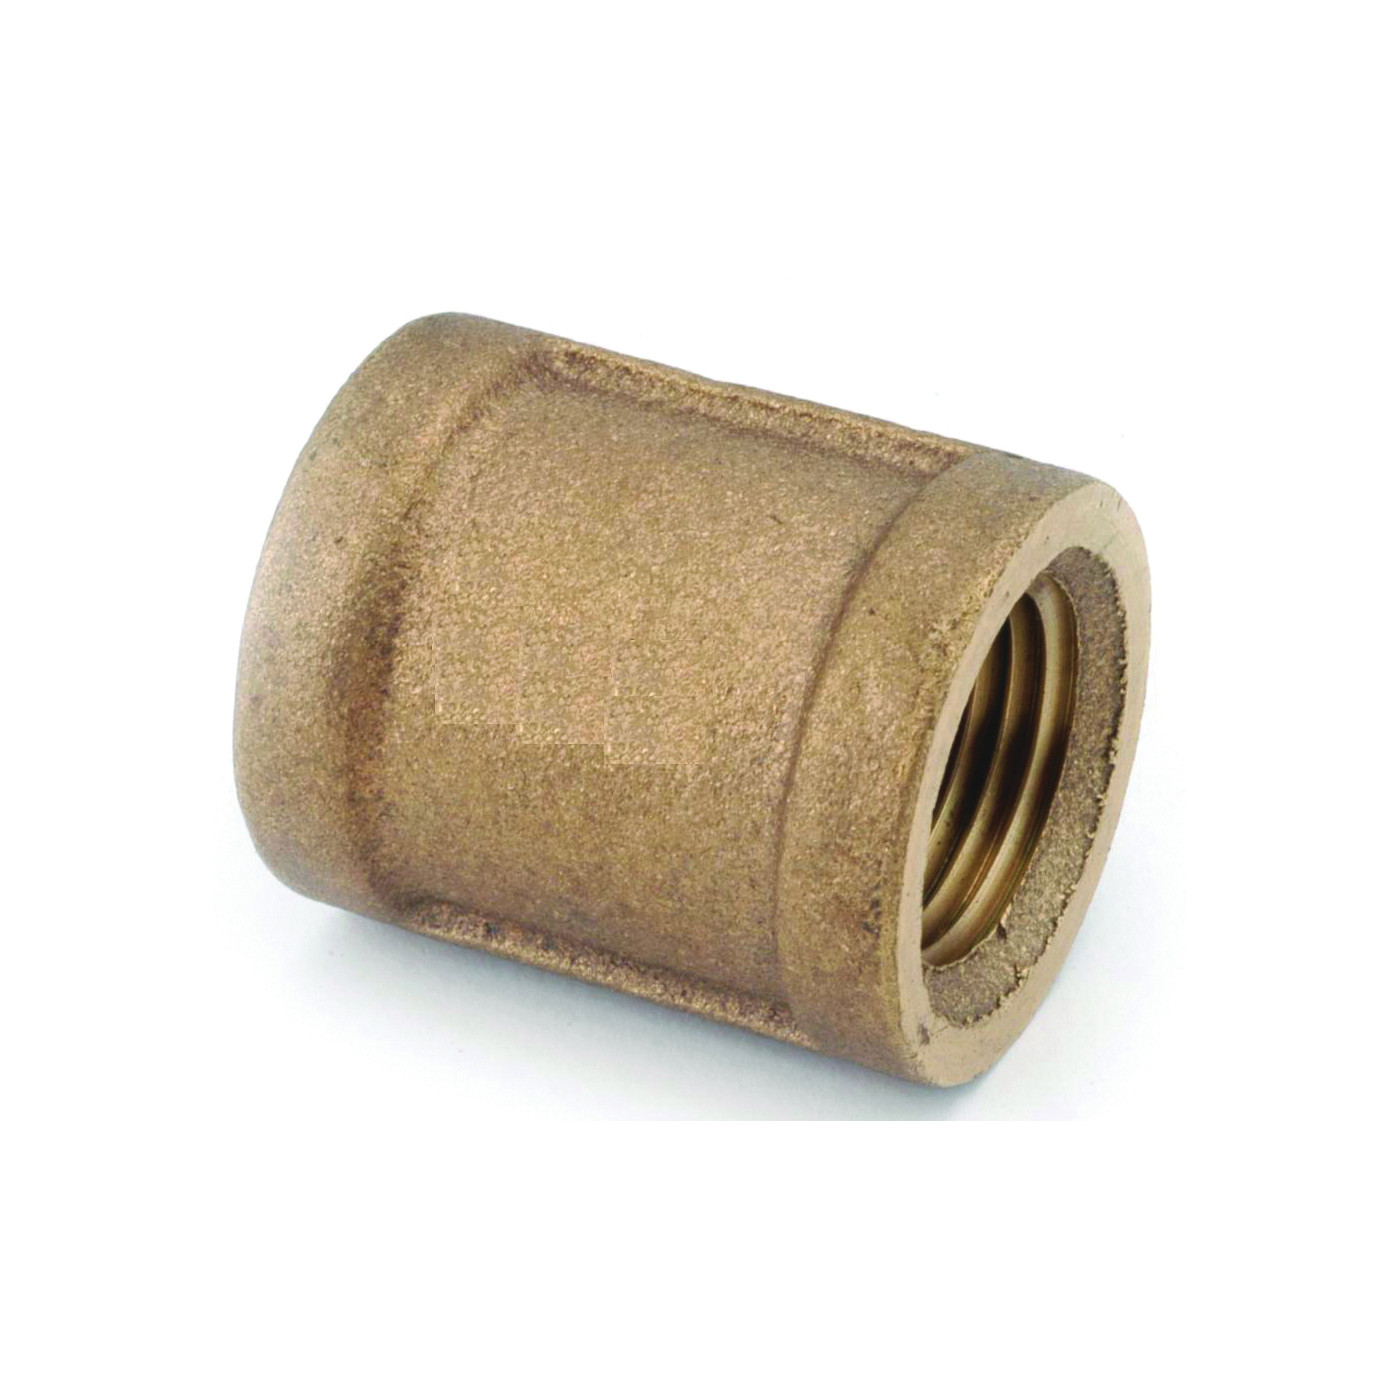 Picture of Anderson Metals 738103-06 Coupling, 3/8 in, FIPT, Brass